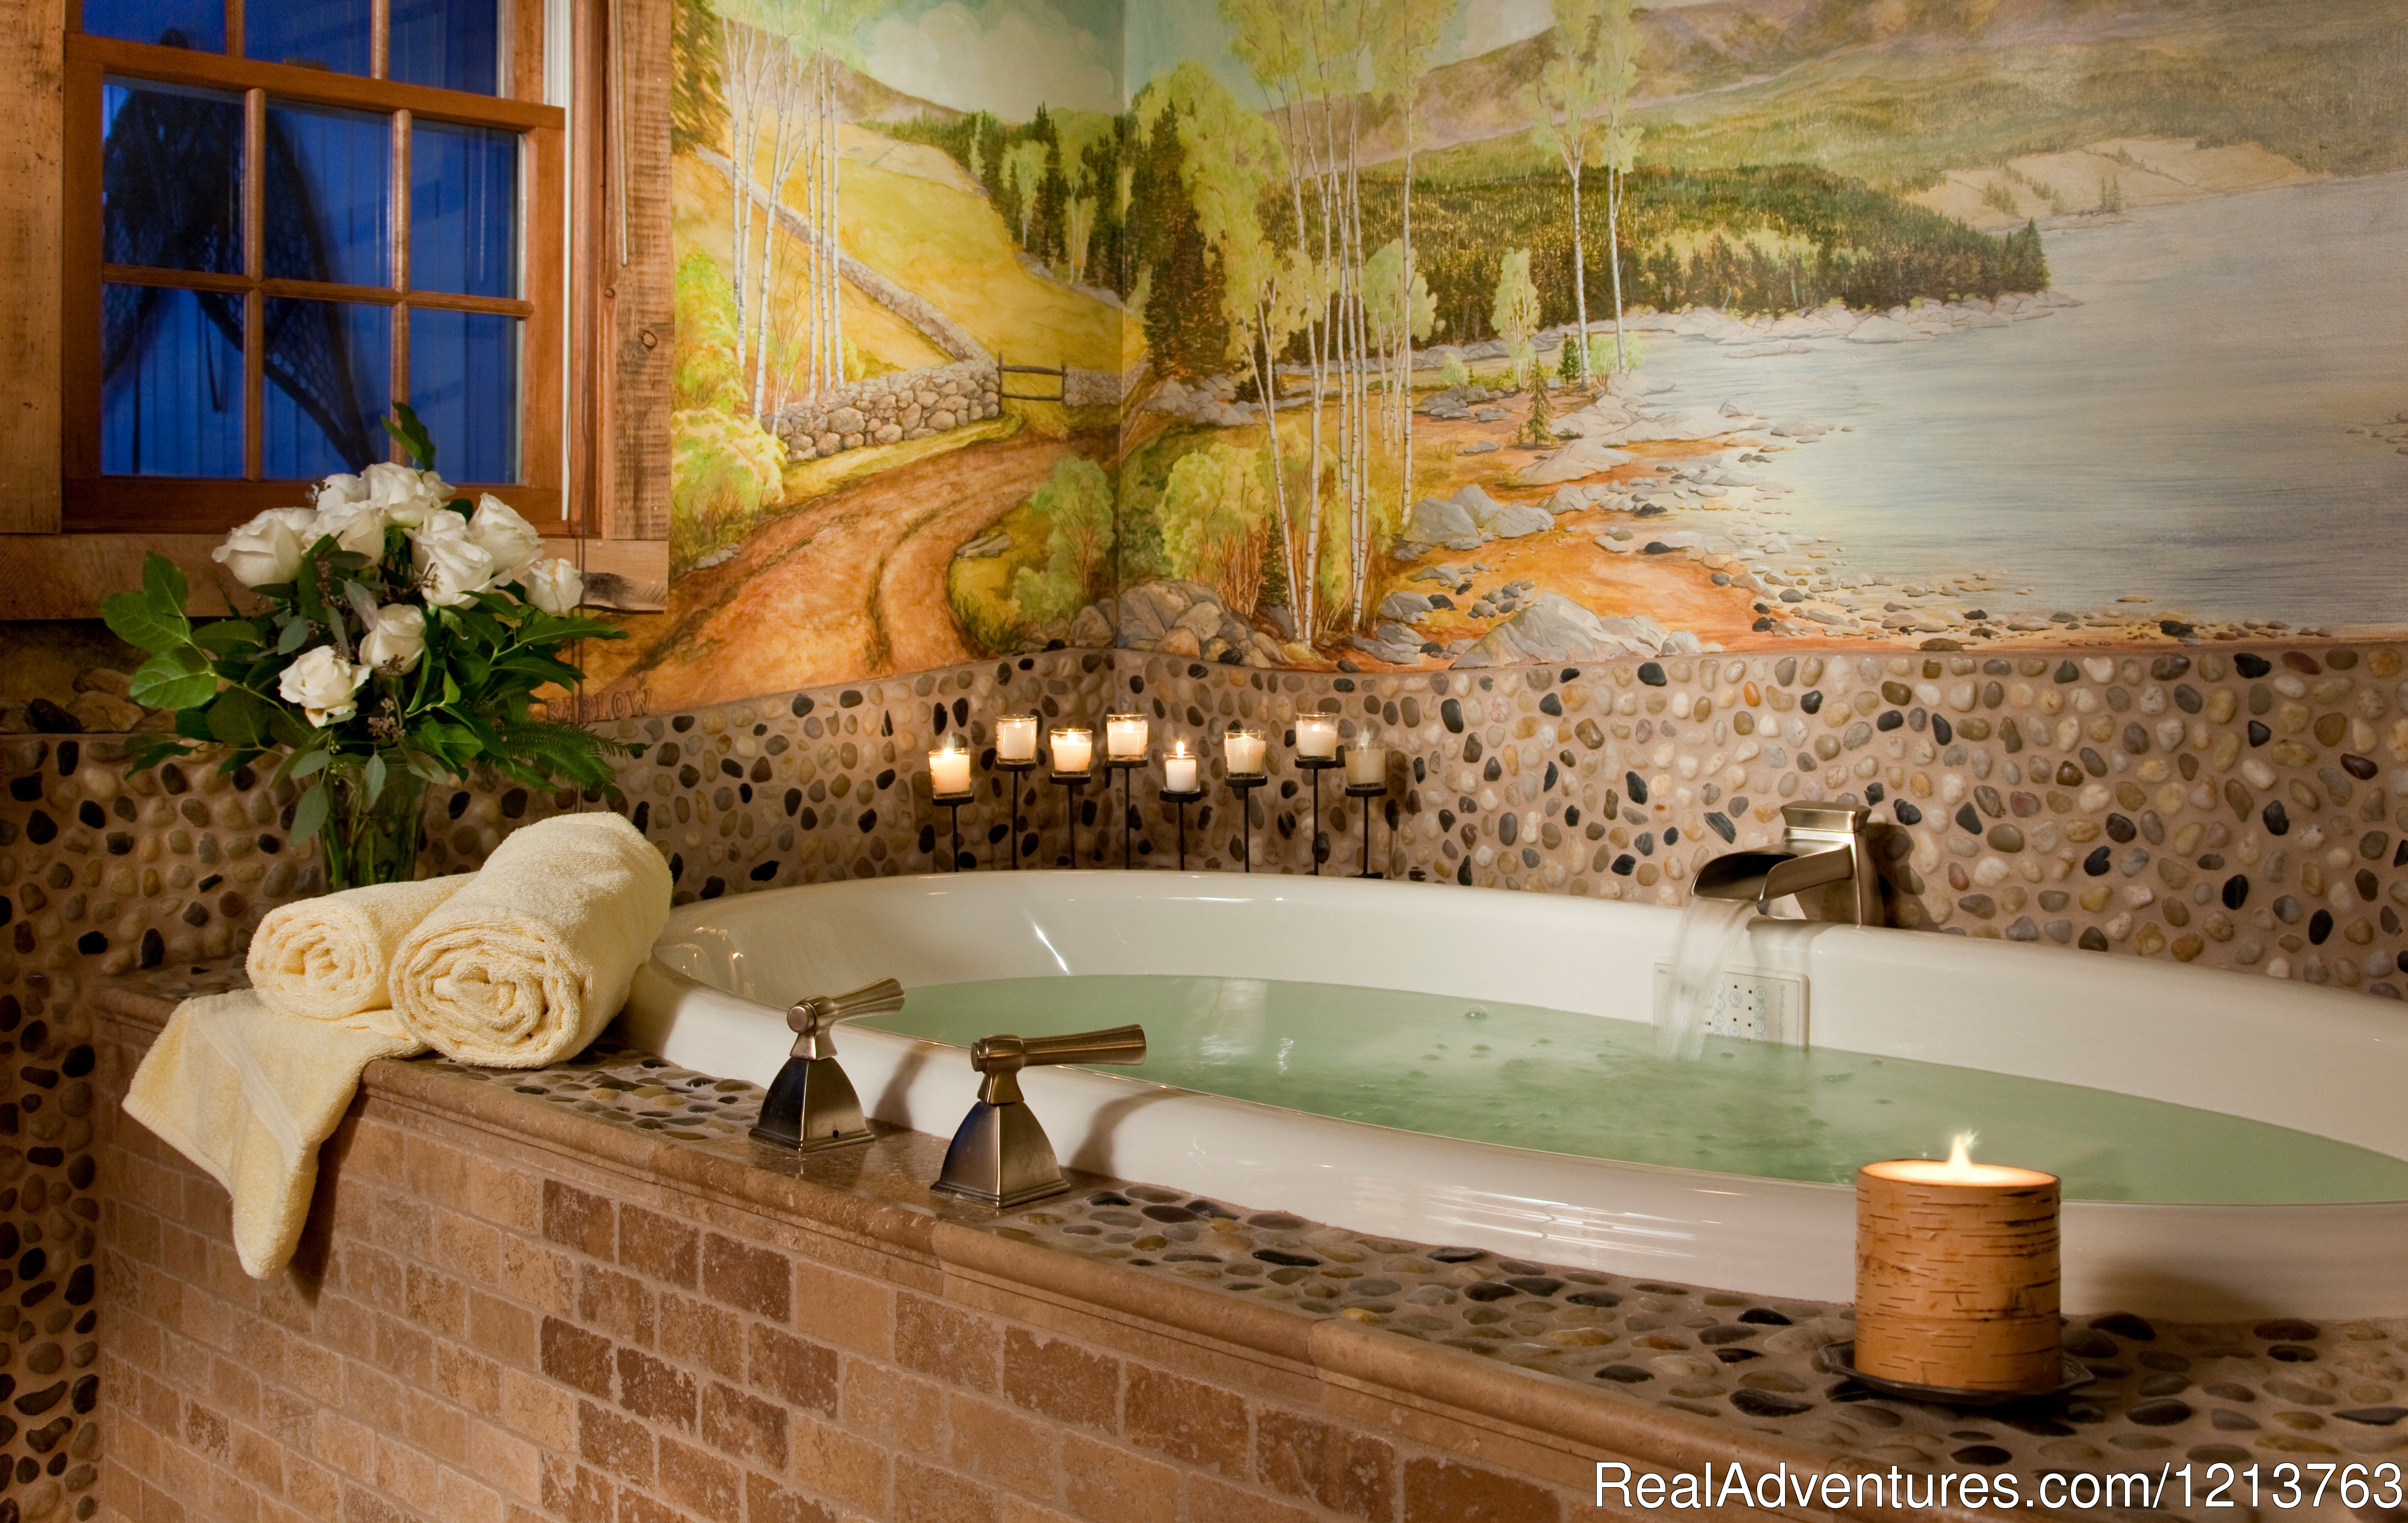 Baxter Room, Carriage House, Whirlpool Tub | Image #12/13 | Captain Jefferds Inn